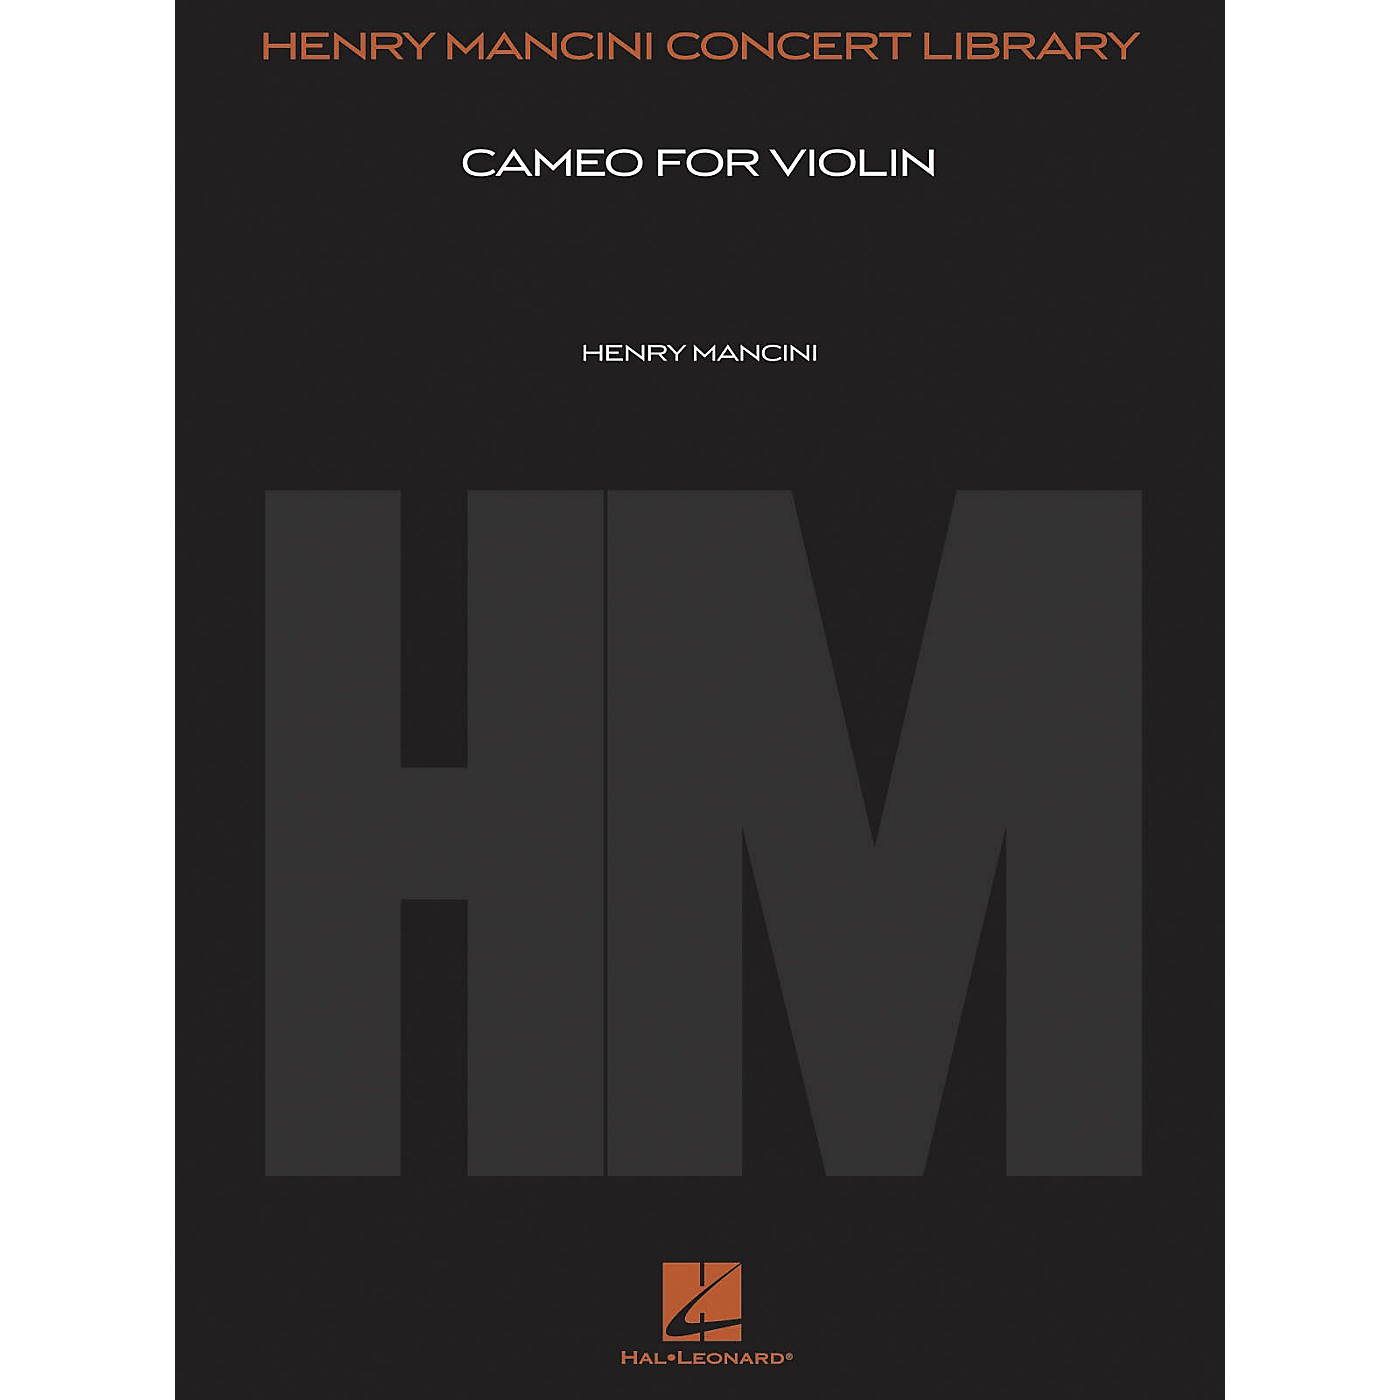 Hal Leonard Cameo for Violin (Score and Parts) Henry Mancini Concert Library Series Composed by Henry Mancini thumbnail